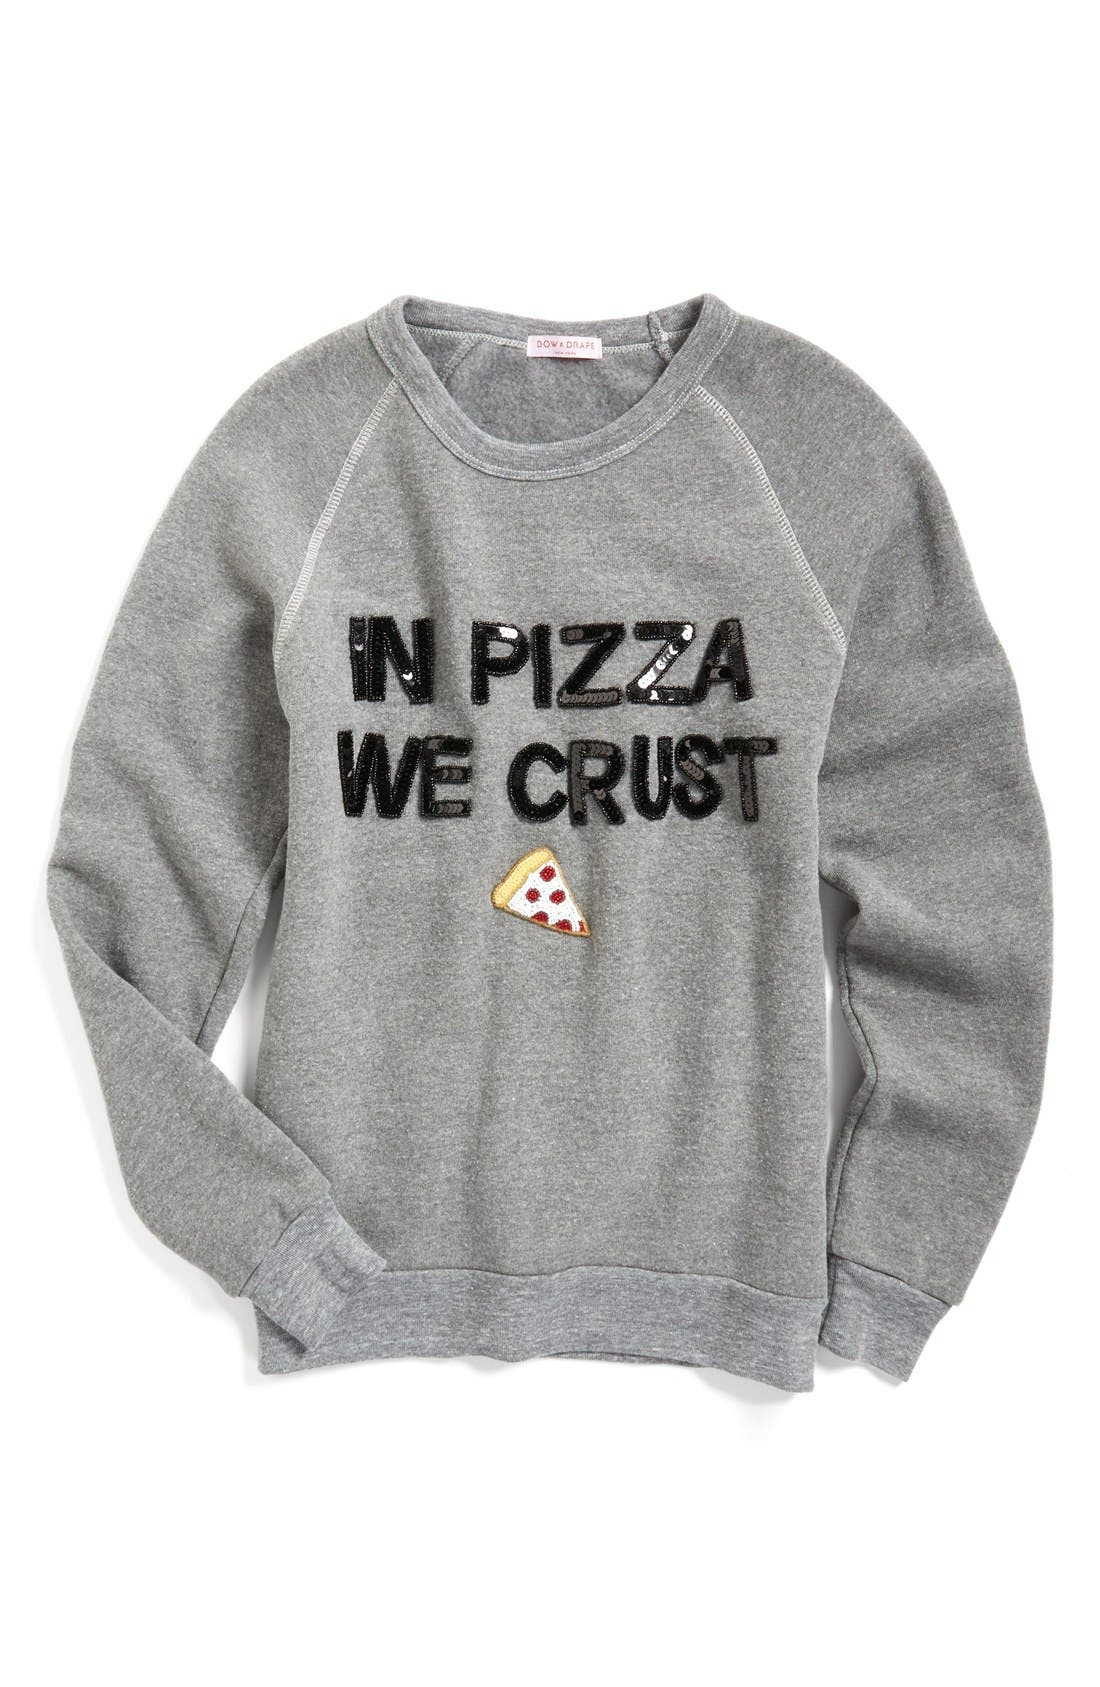 Alternate Image 1 Selected - Bow & Drape In Pizza We Crust Sweatshirt